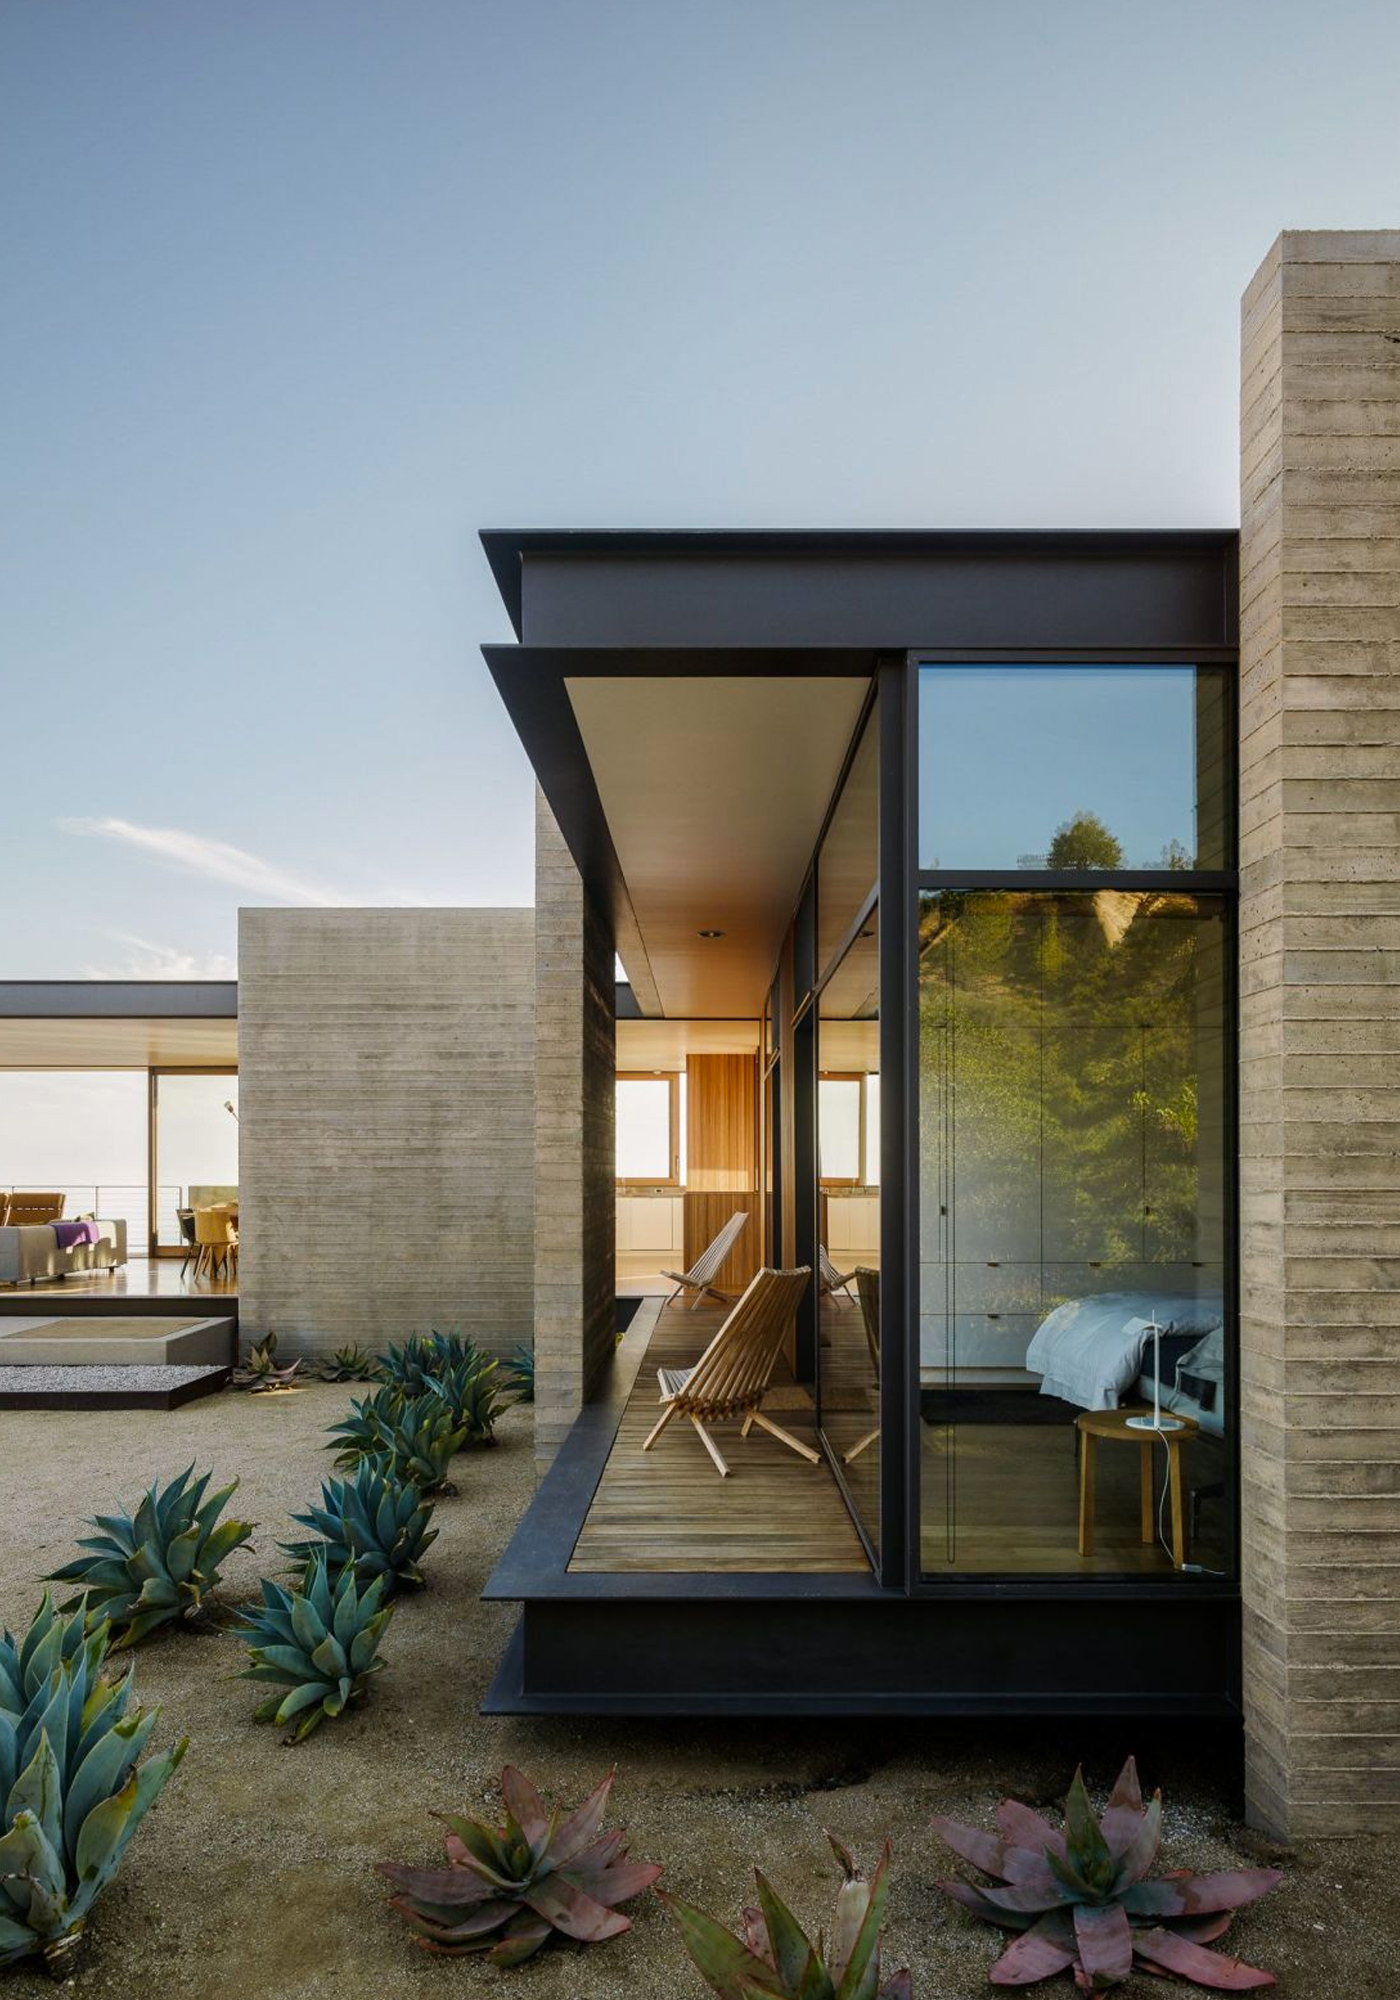 Architecture Maison Saddle Peak Topanga Canyon